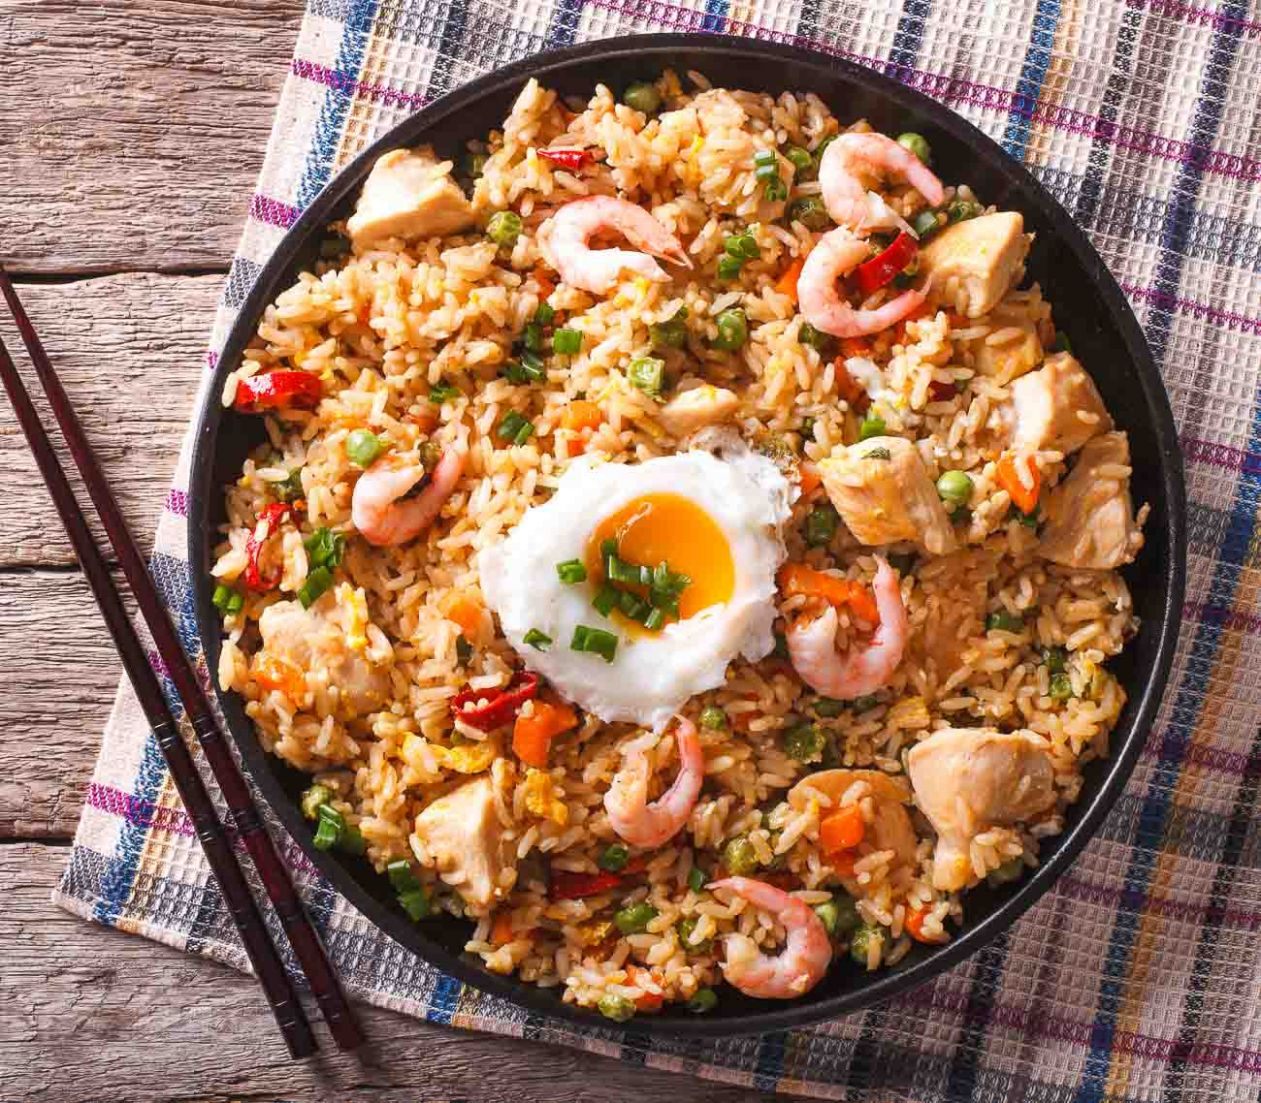 Indo Chinese Prawn And Chicken Fried Rice Recipe - Recipes Rice With Prawns